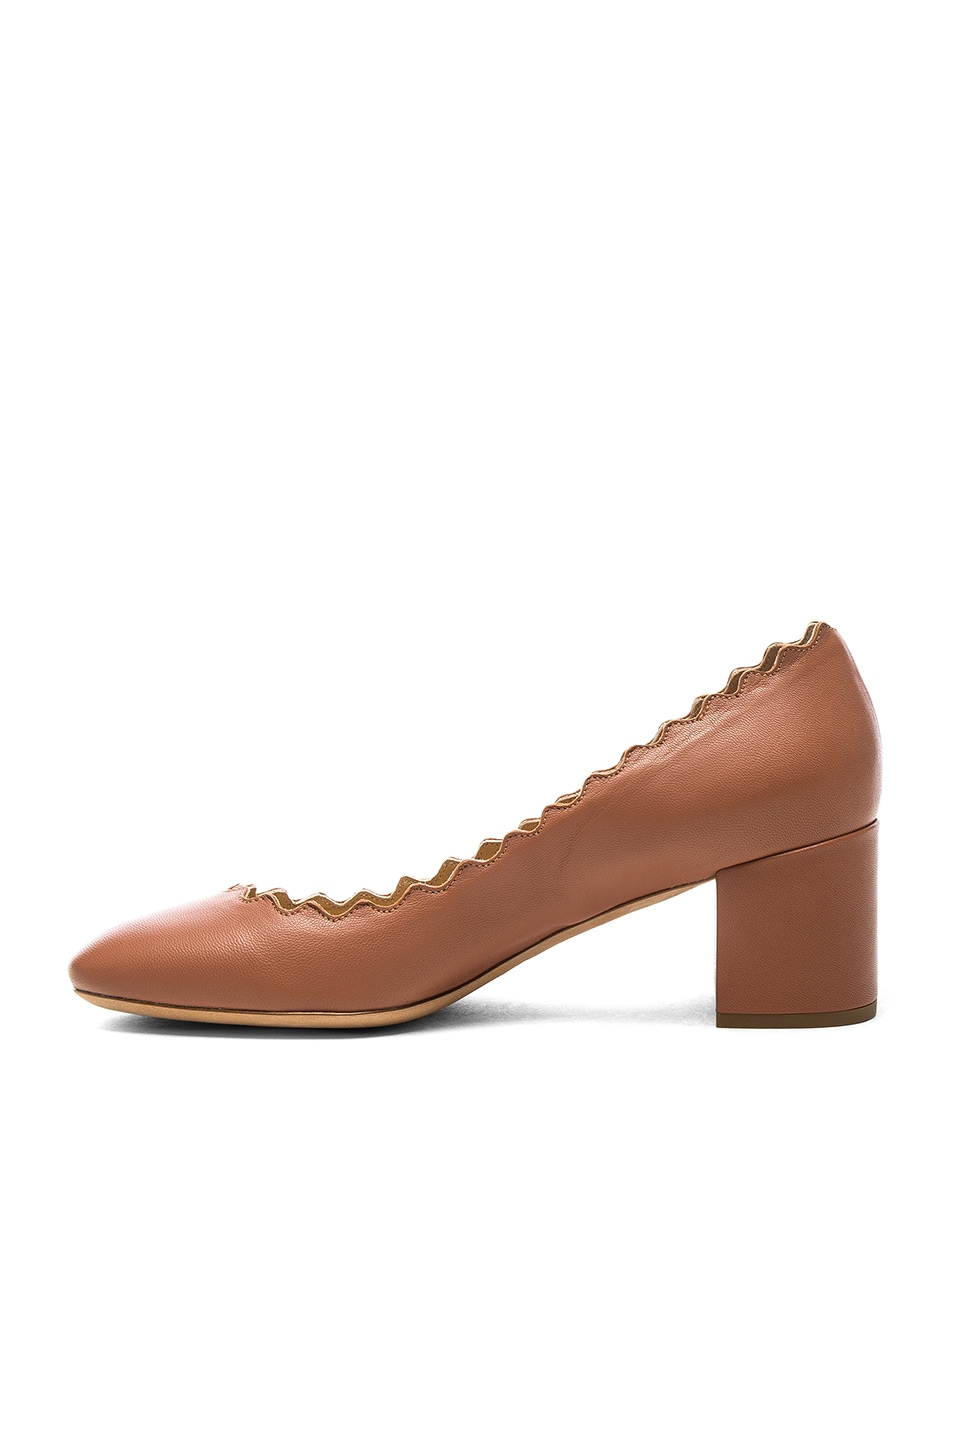 Image 5 of Chloe Lauren Leather Scallop Pumps in Blush Pink